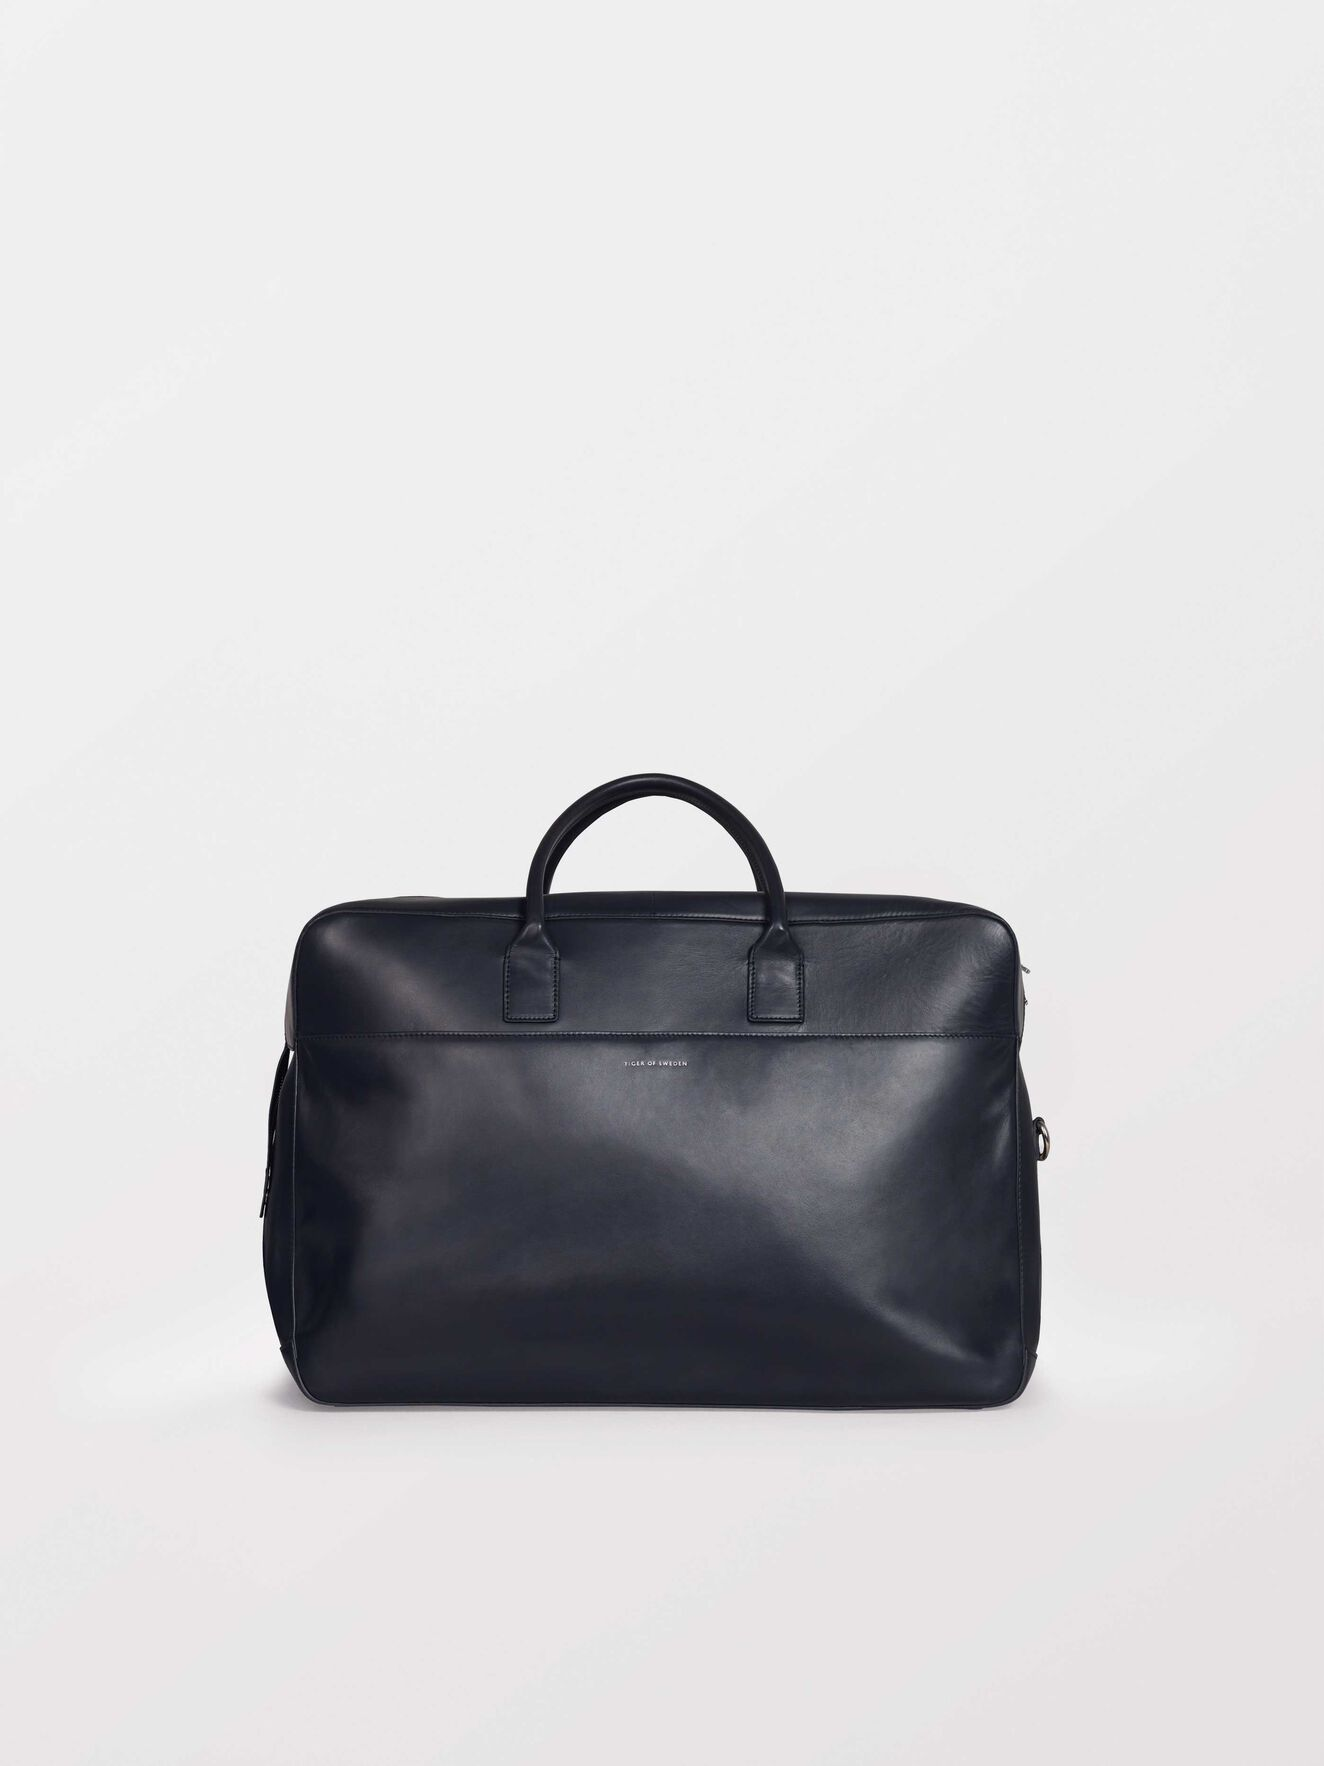 Bernoulli Weekend Bag in Light Ink from Tiger of Sweden